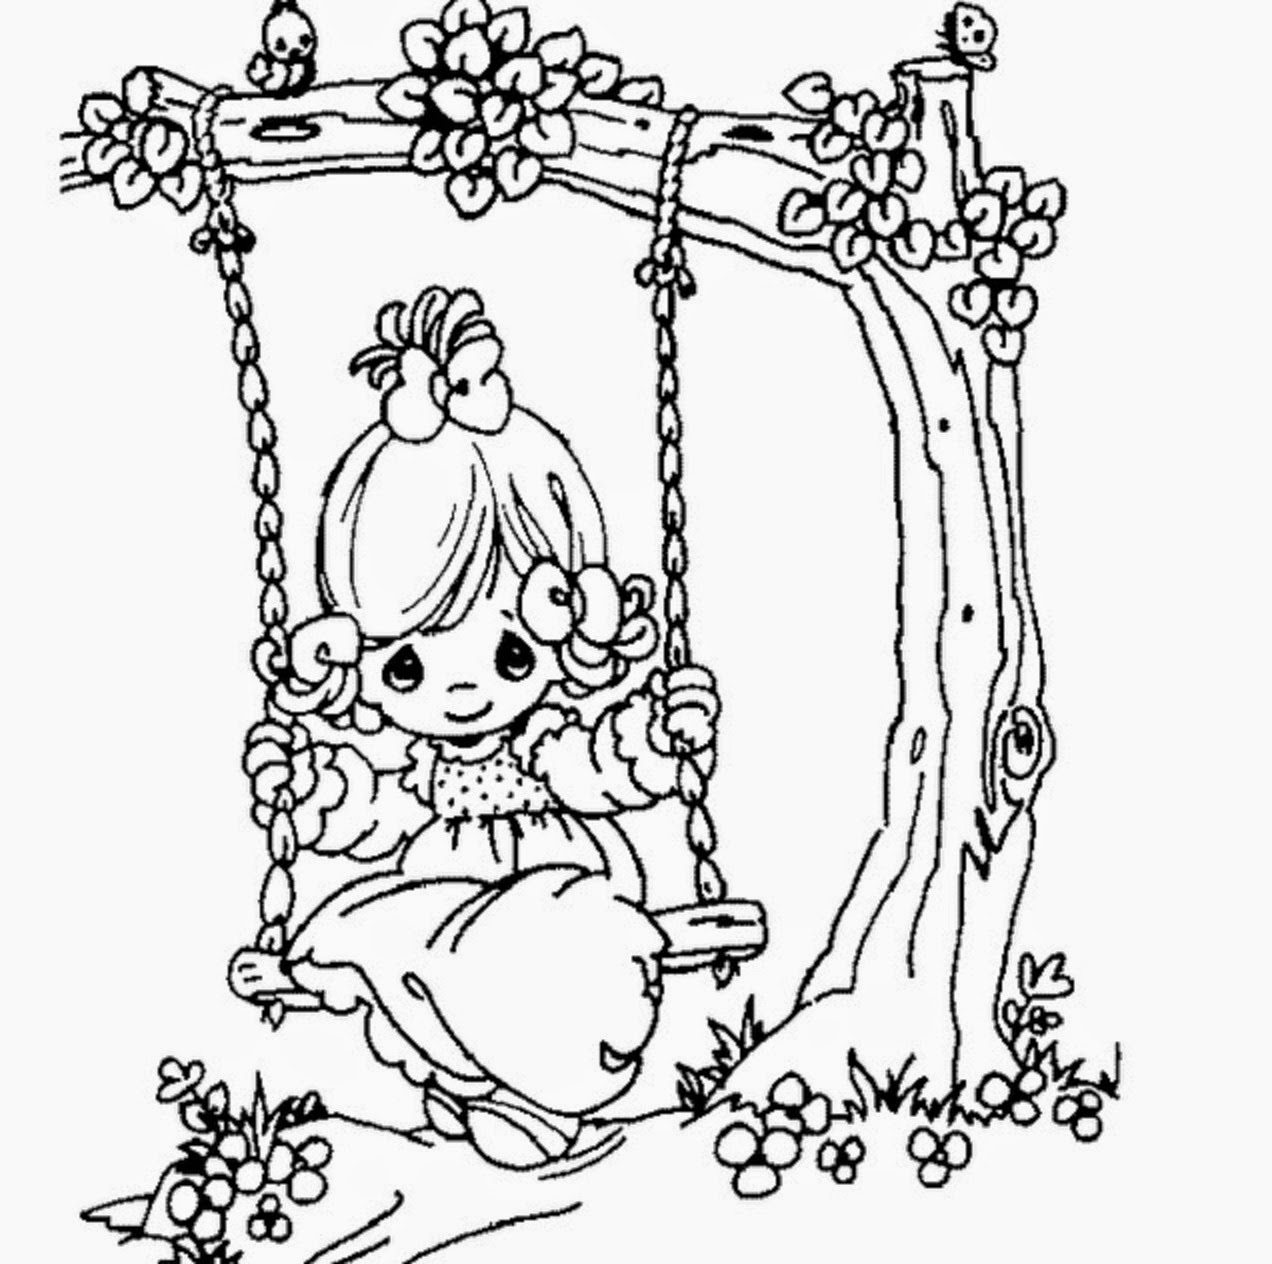 Beautiful Precious Moments Girl Coloring Page For Kids Of A Cute Cartoon Colour Drawing Hd Wallpaper Colours Drawing Wallpaper